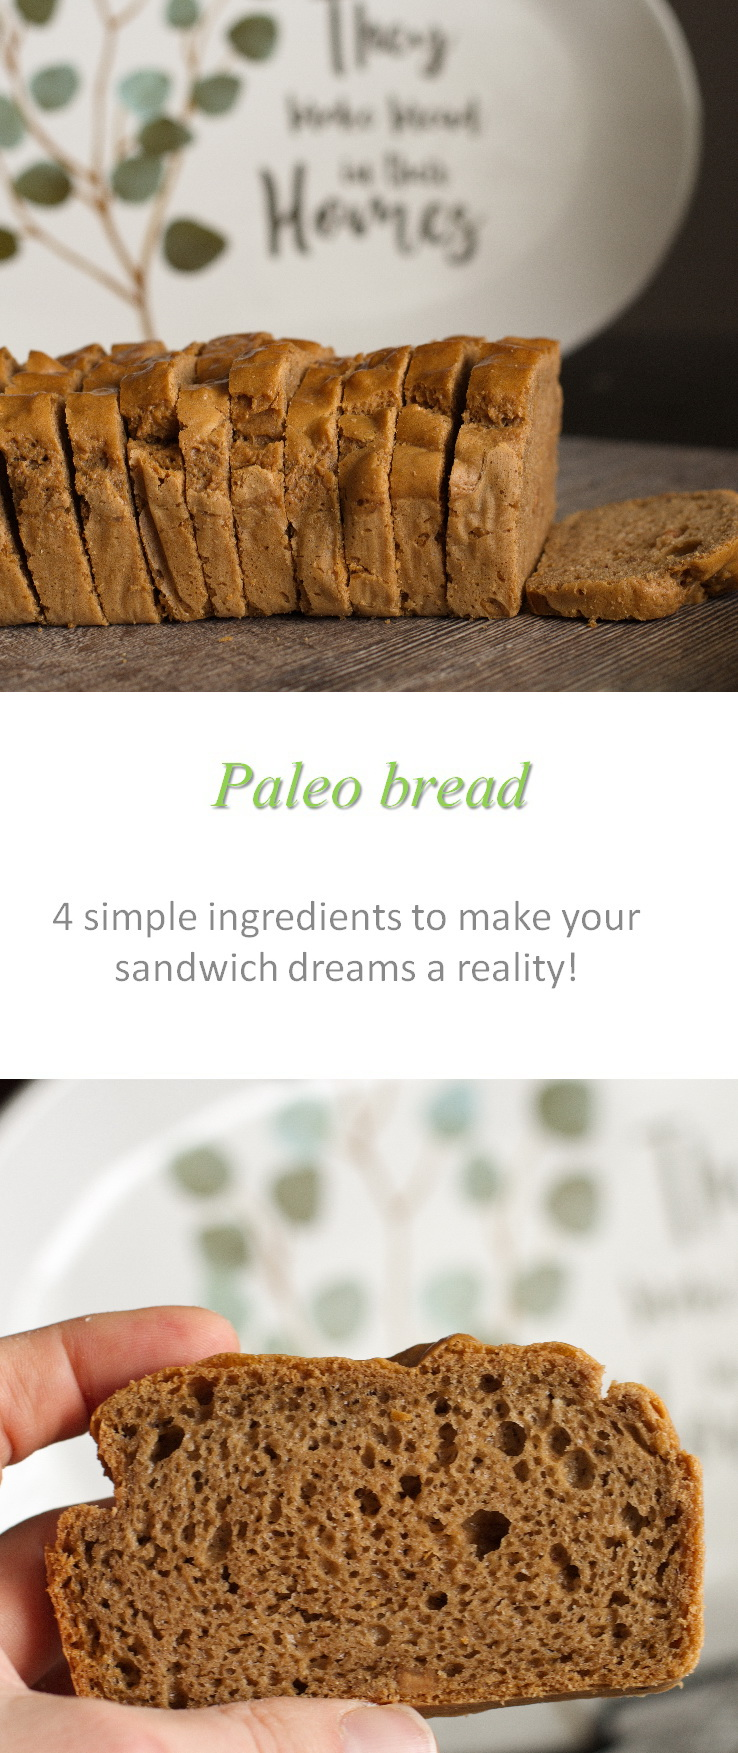 Whoever knew that Paleo bread could be so easy to make?  And so versatile for sandwiches, soups, toast ...? #bread #paleo #cookkathome #glutenfree #dairyfree